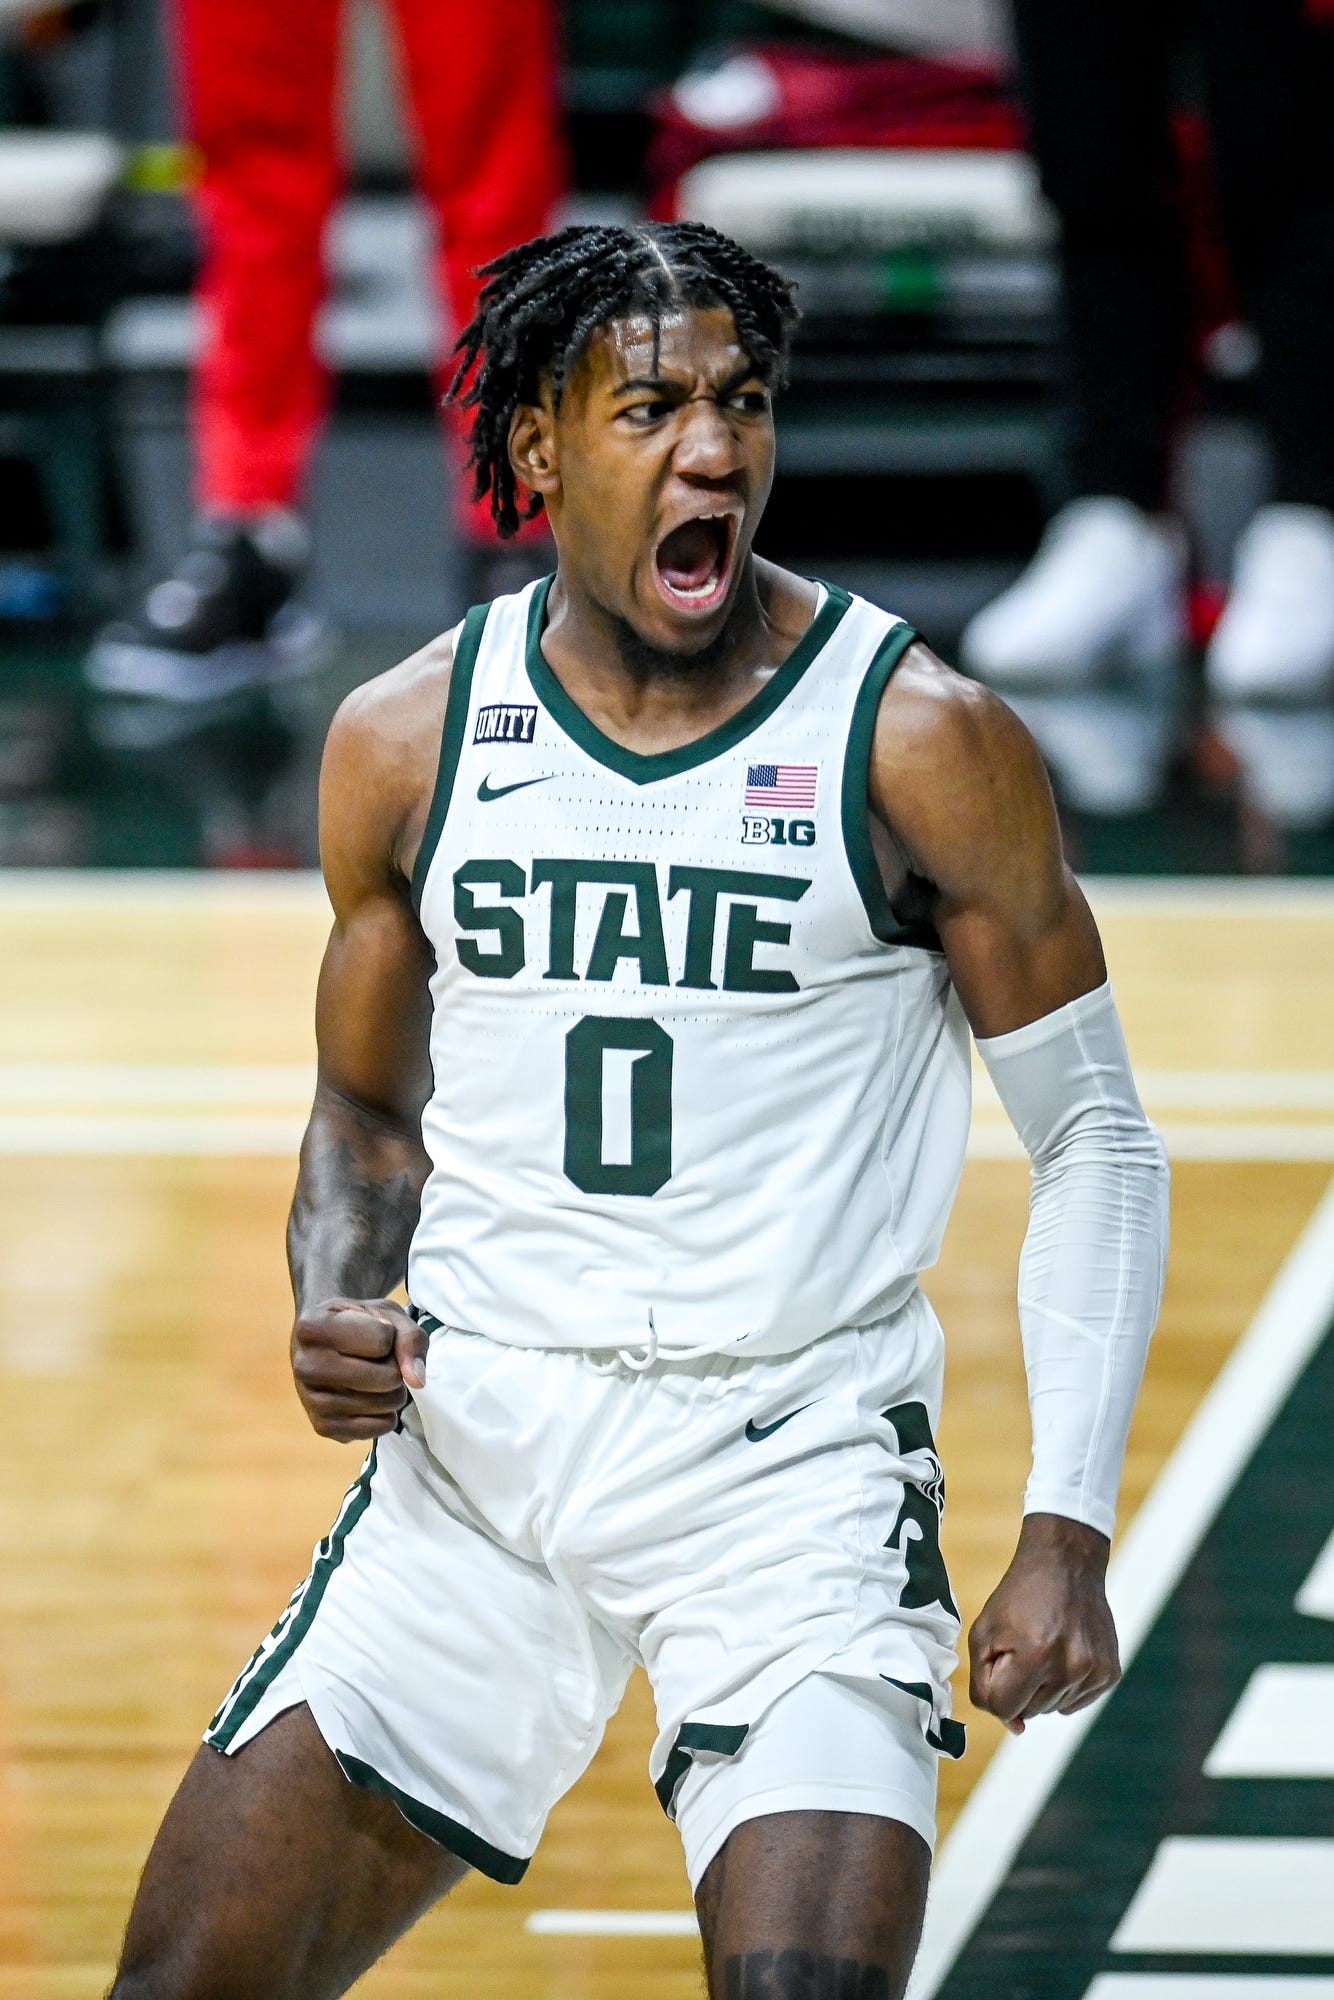 How Aaron Henry's exit can allow MSU to build a more complete team